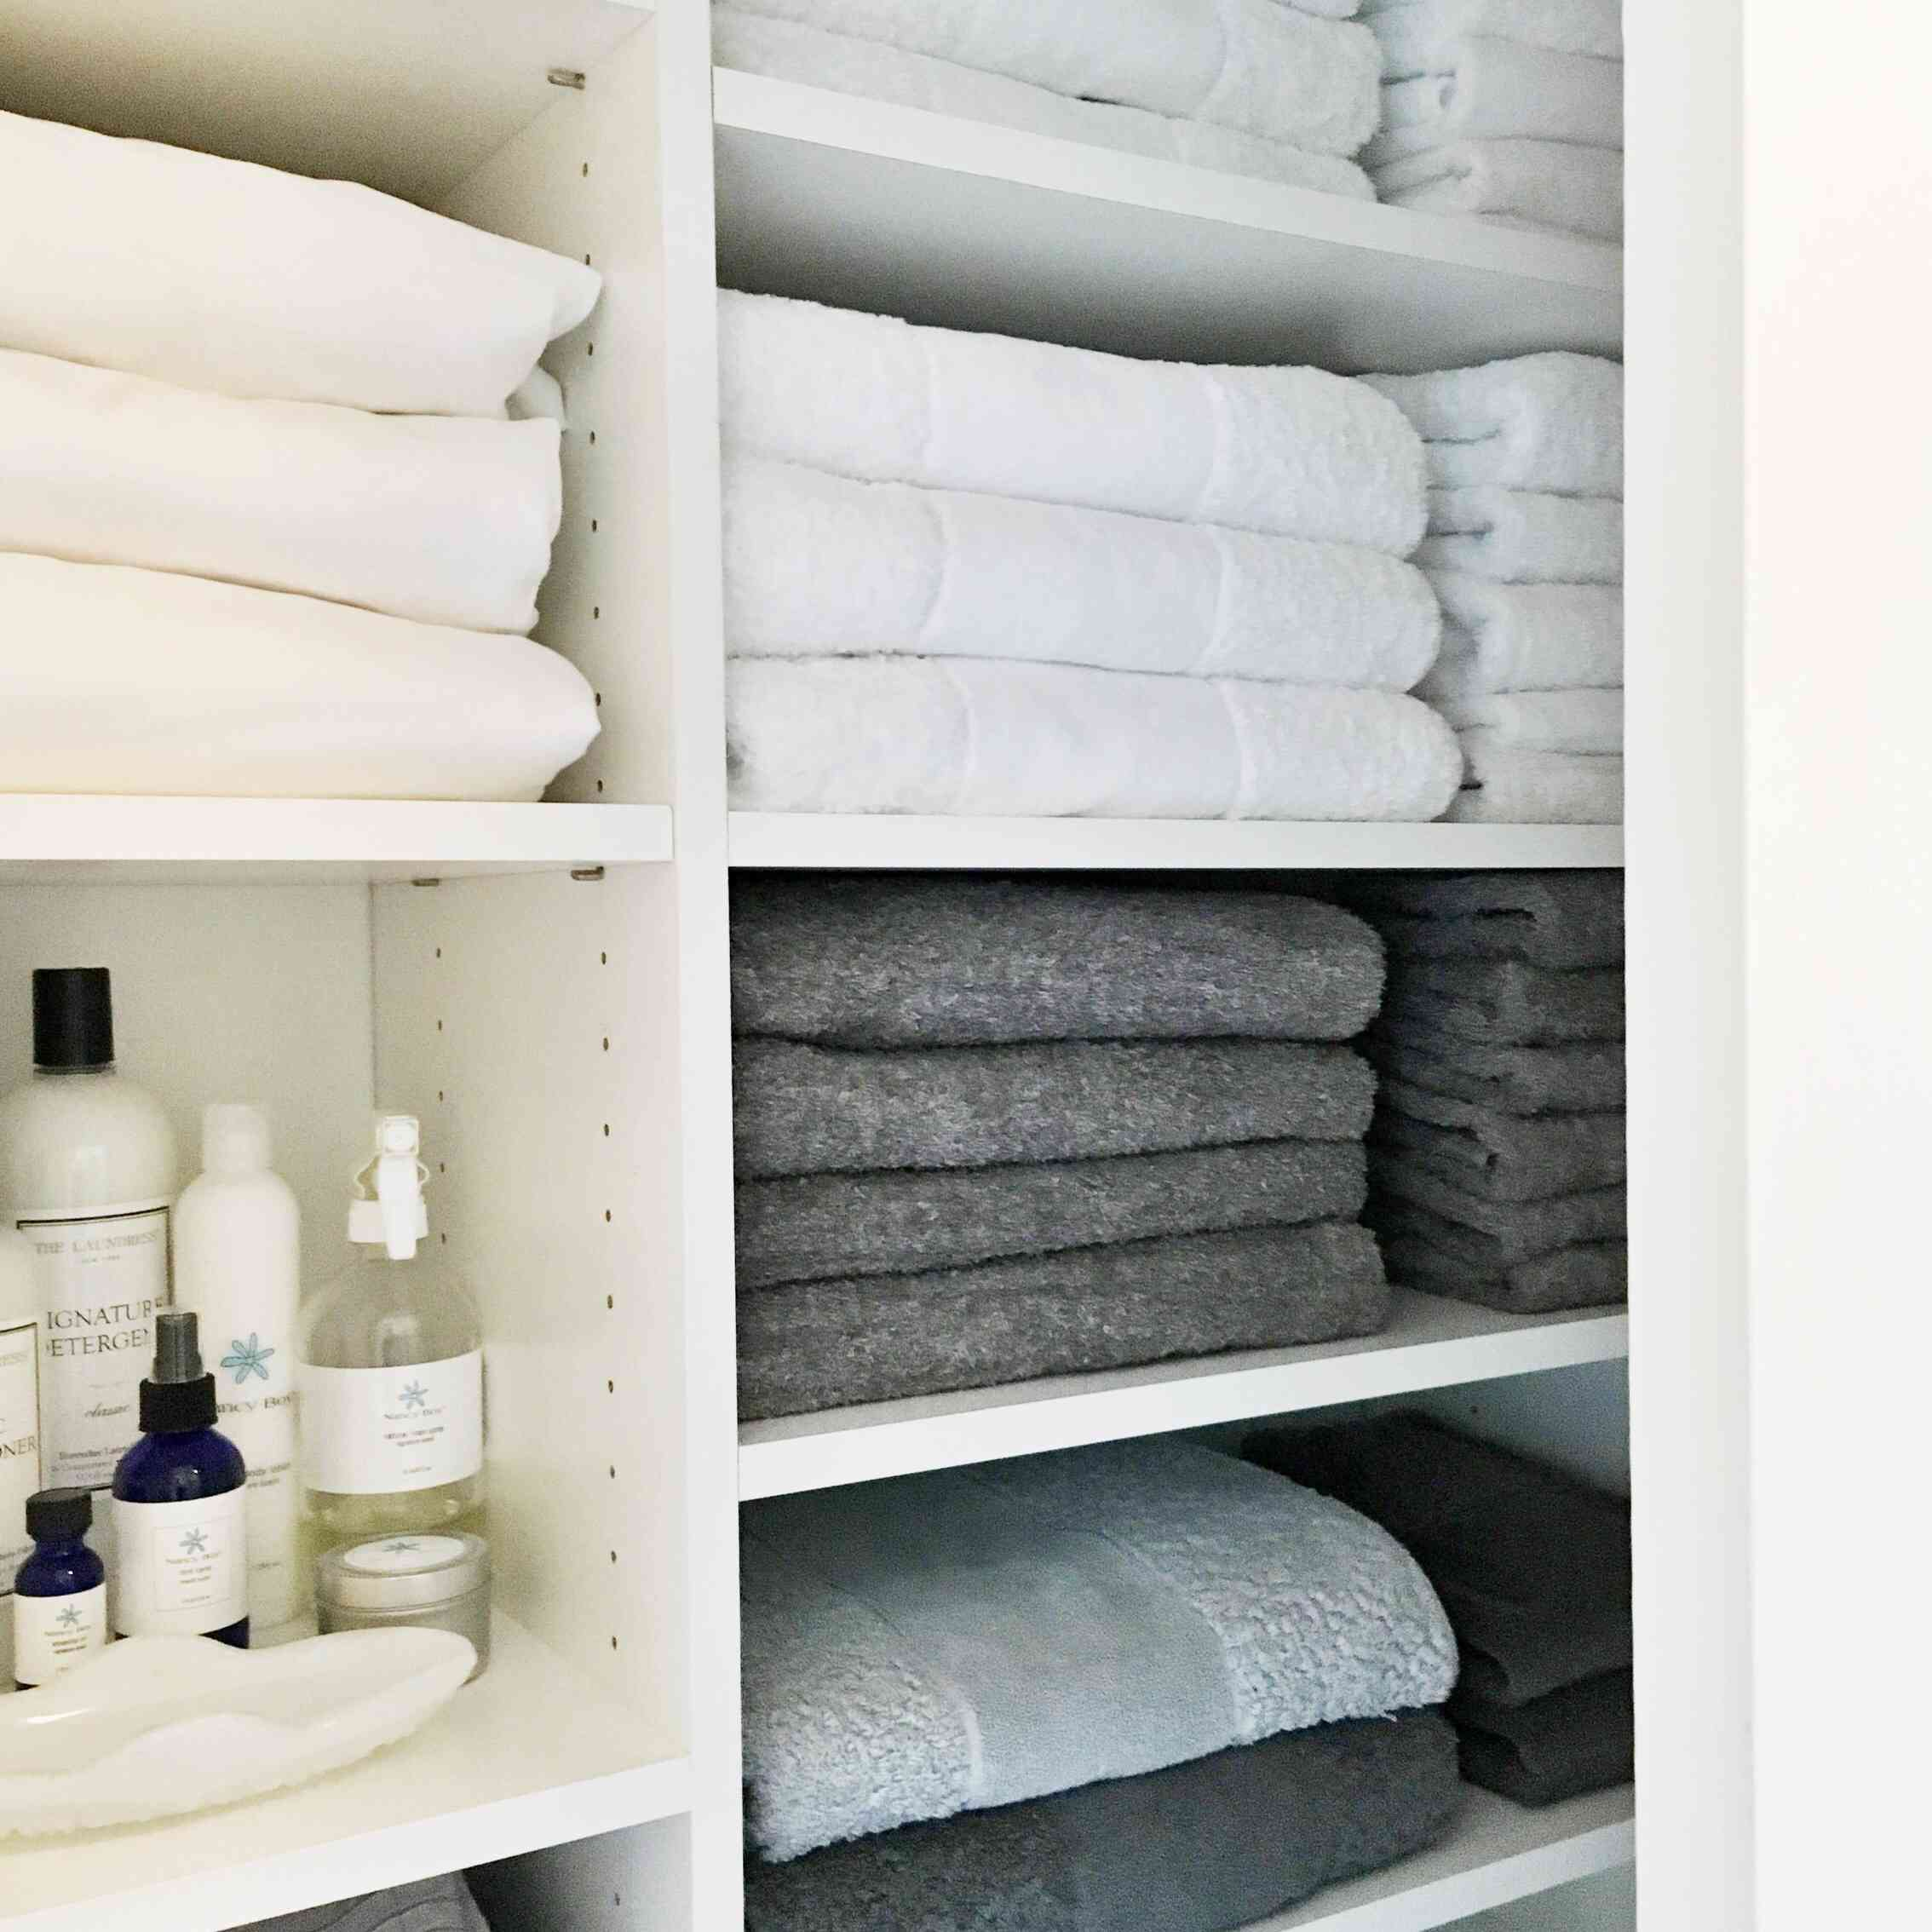 hall closet with matching linens